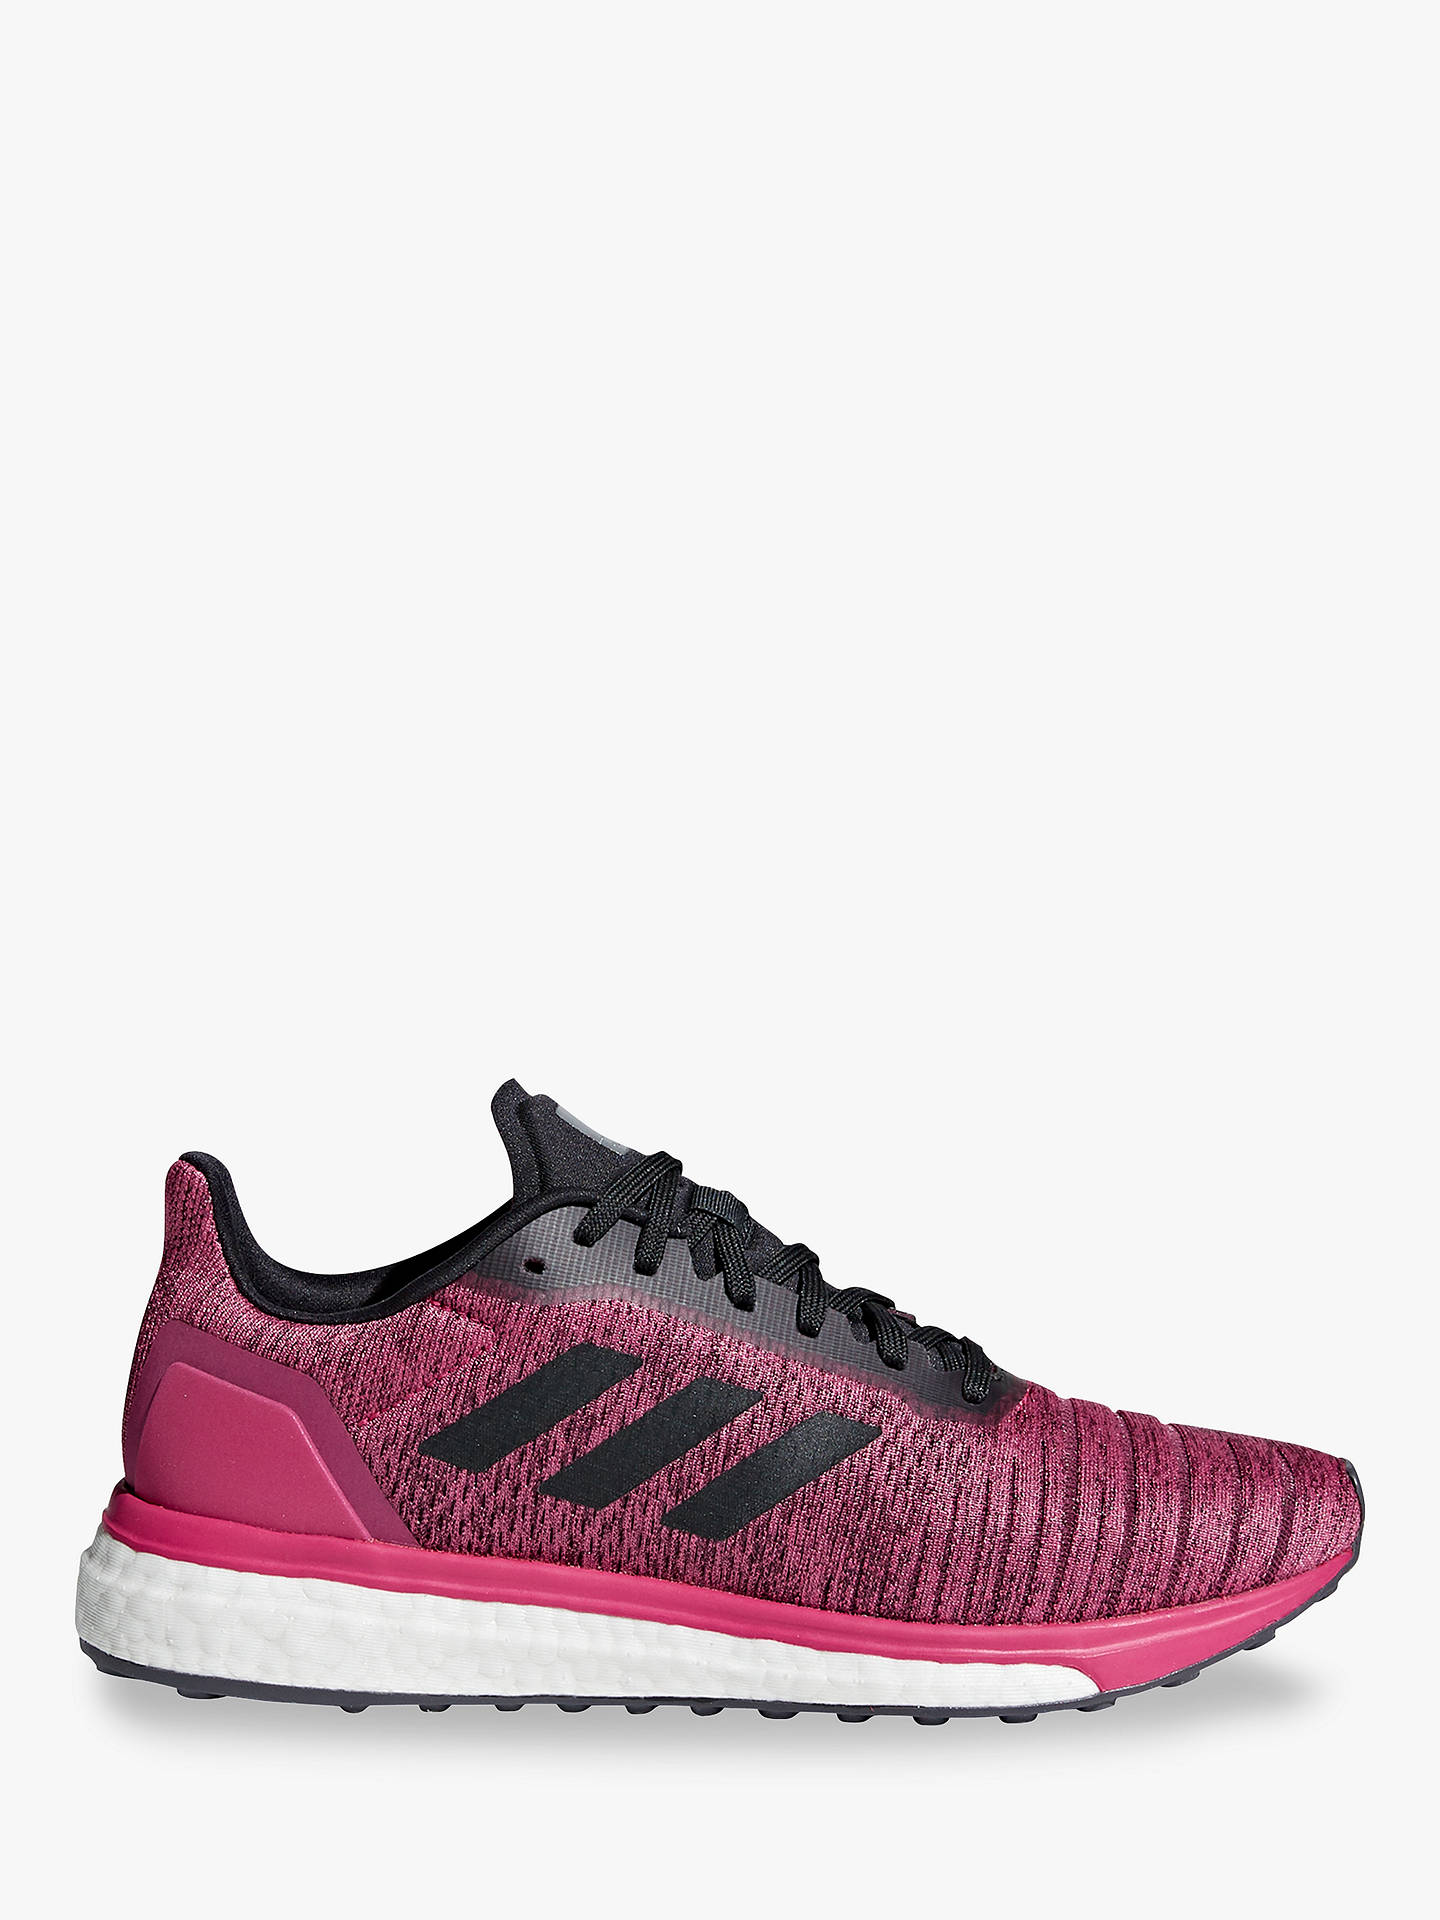 pretty nice e23b6 bcc25 Buy adidas Solar Drive Women s Running Shoes, Real Magenta Carbon Grey, 4  Online ...